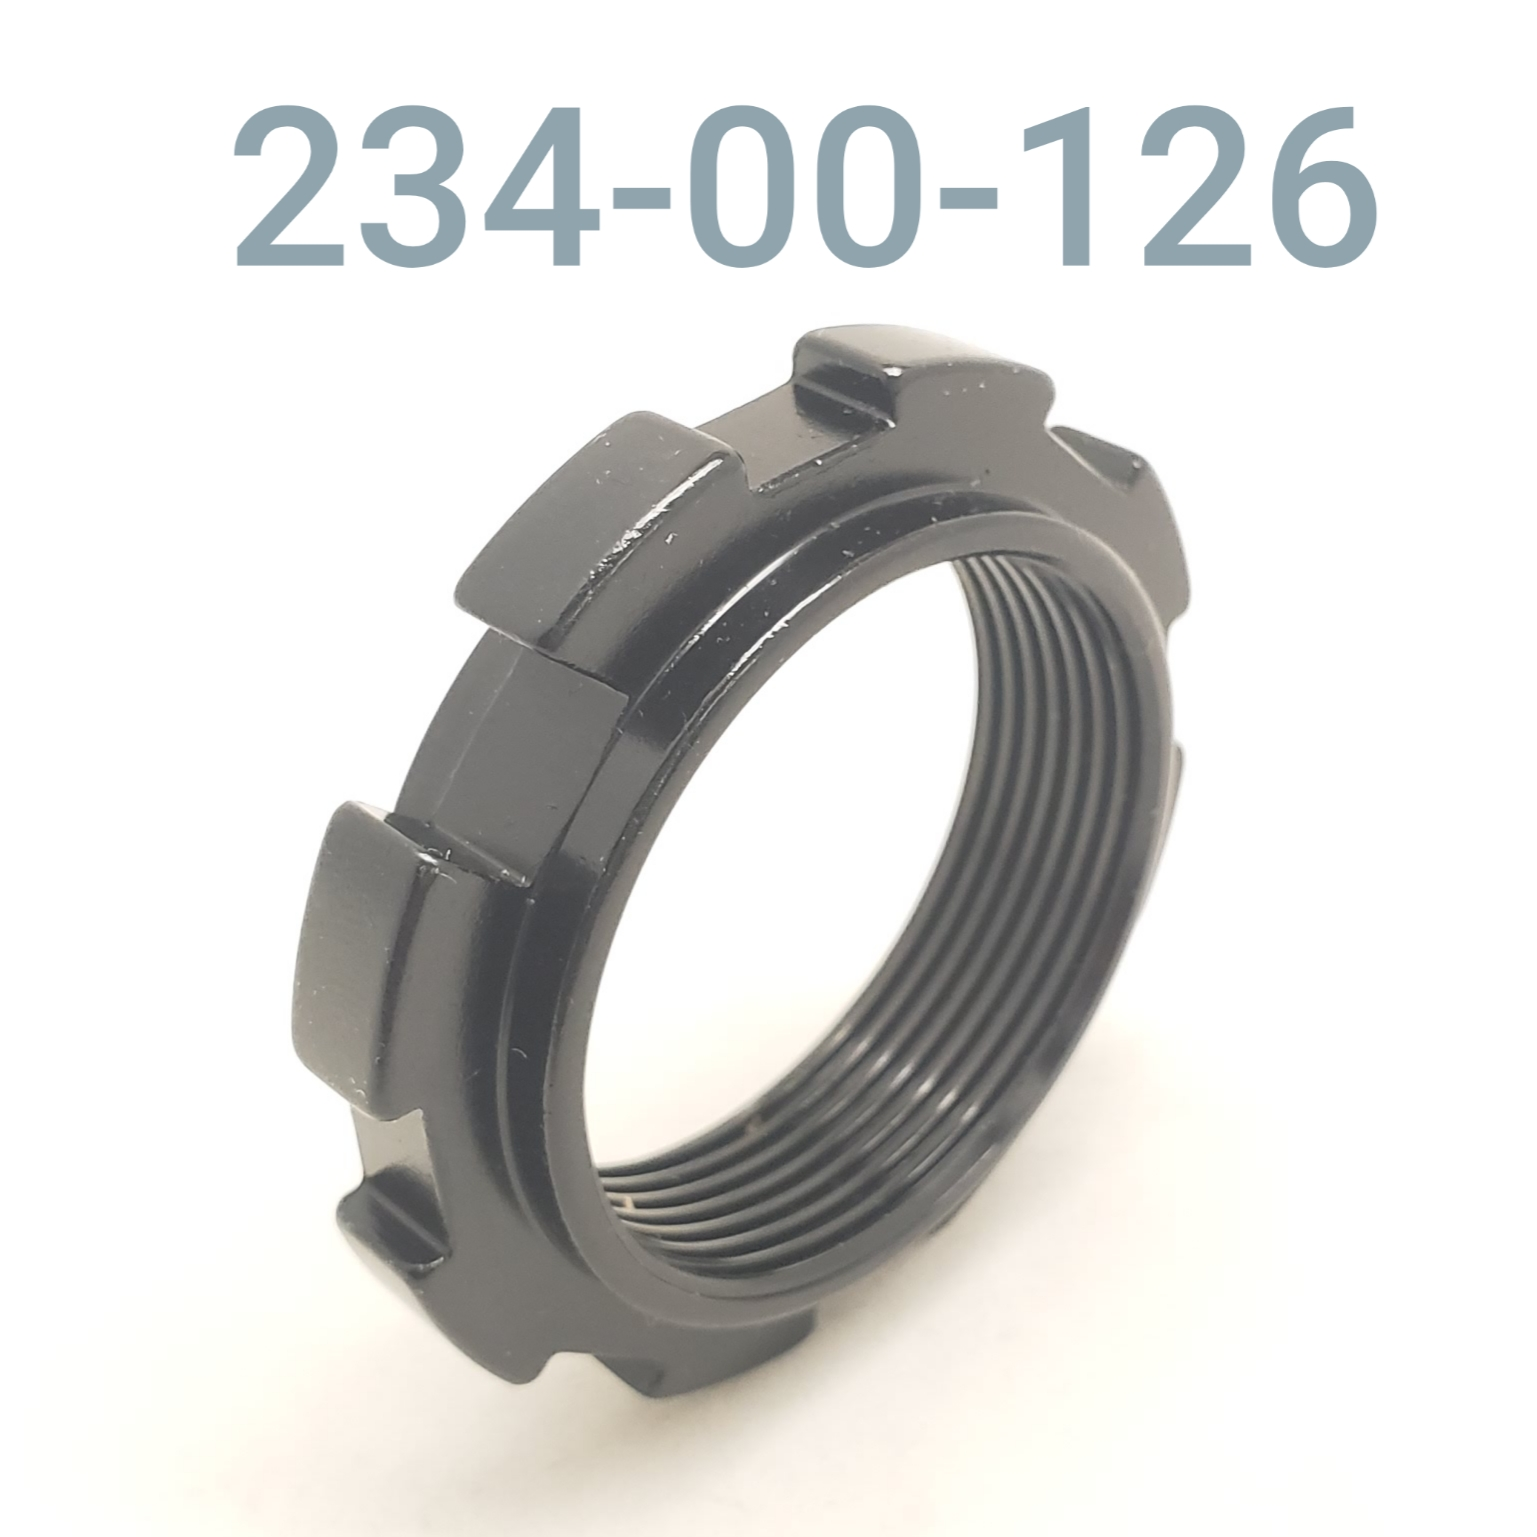 PRELOAD RING, W/ TAB SLOT, ALUM. BODY, BLACK